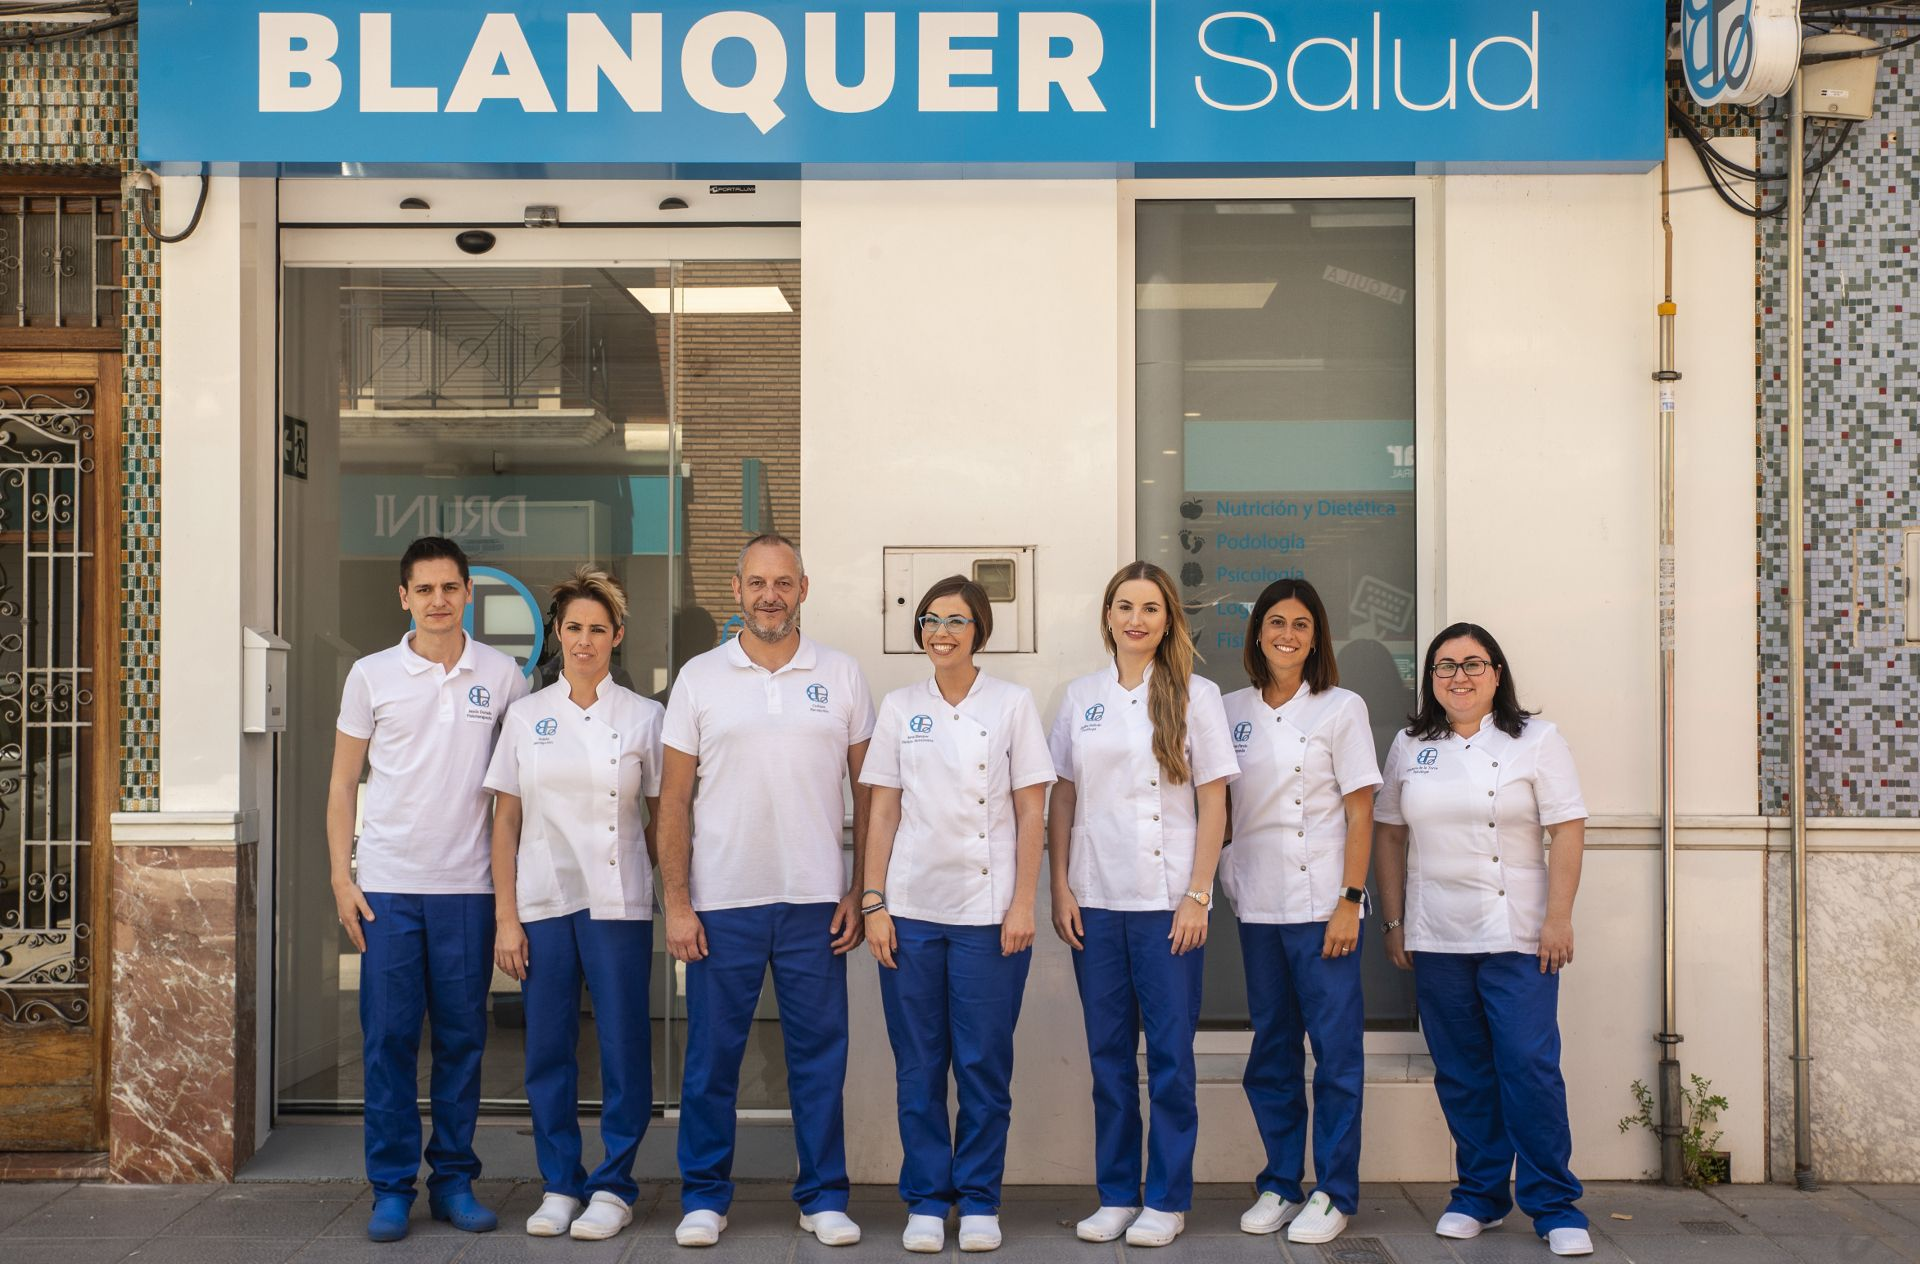 Blanquer SALUD equipo